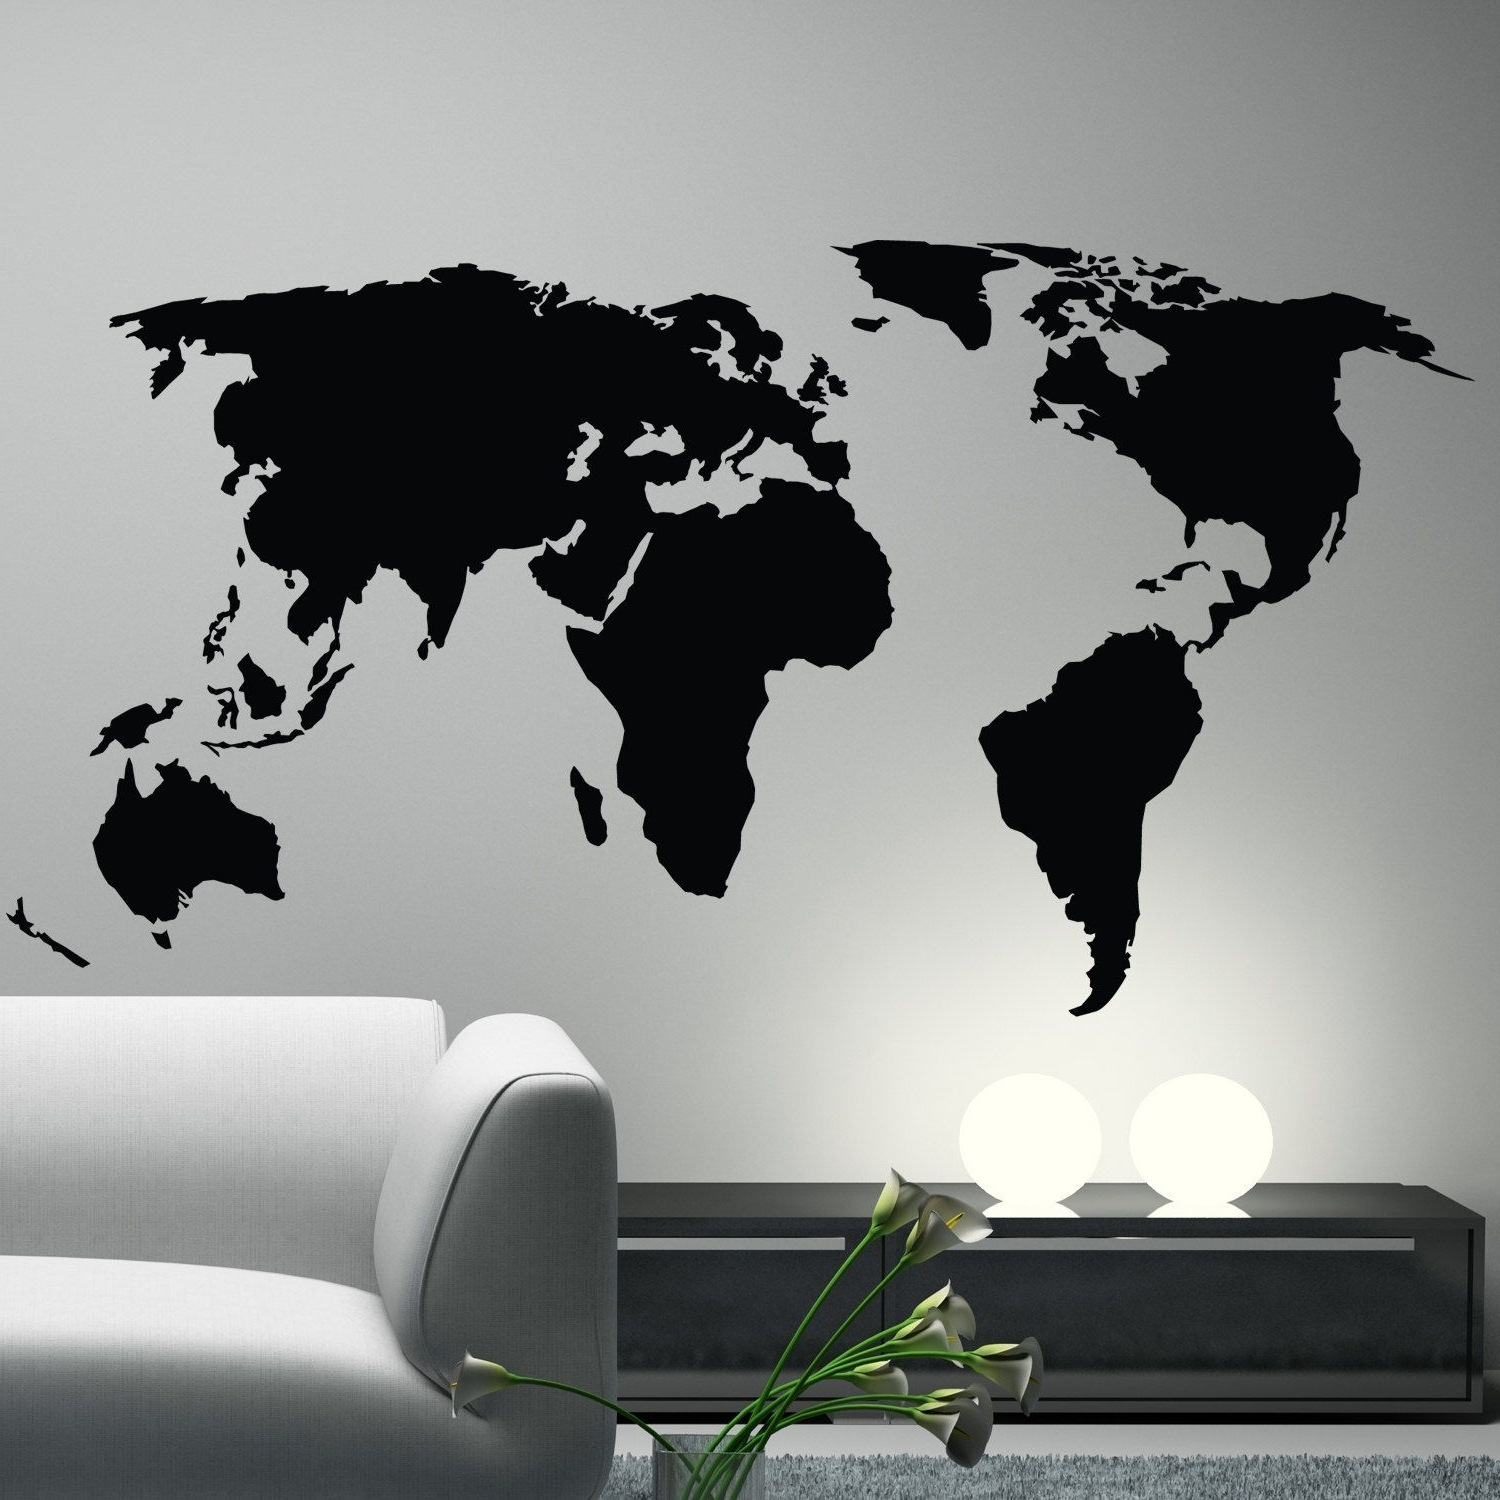 Office Decor. World Map Wall Decal Sticker World Country Atlas The With Favorite Vinyl Wall Art World Map (Gallery 2 of 20)